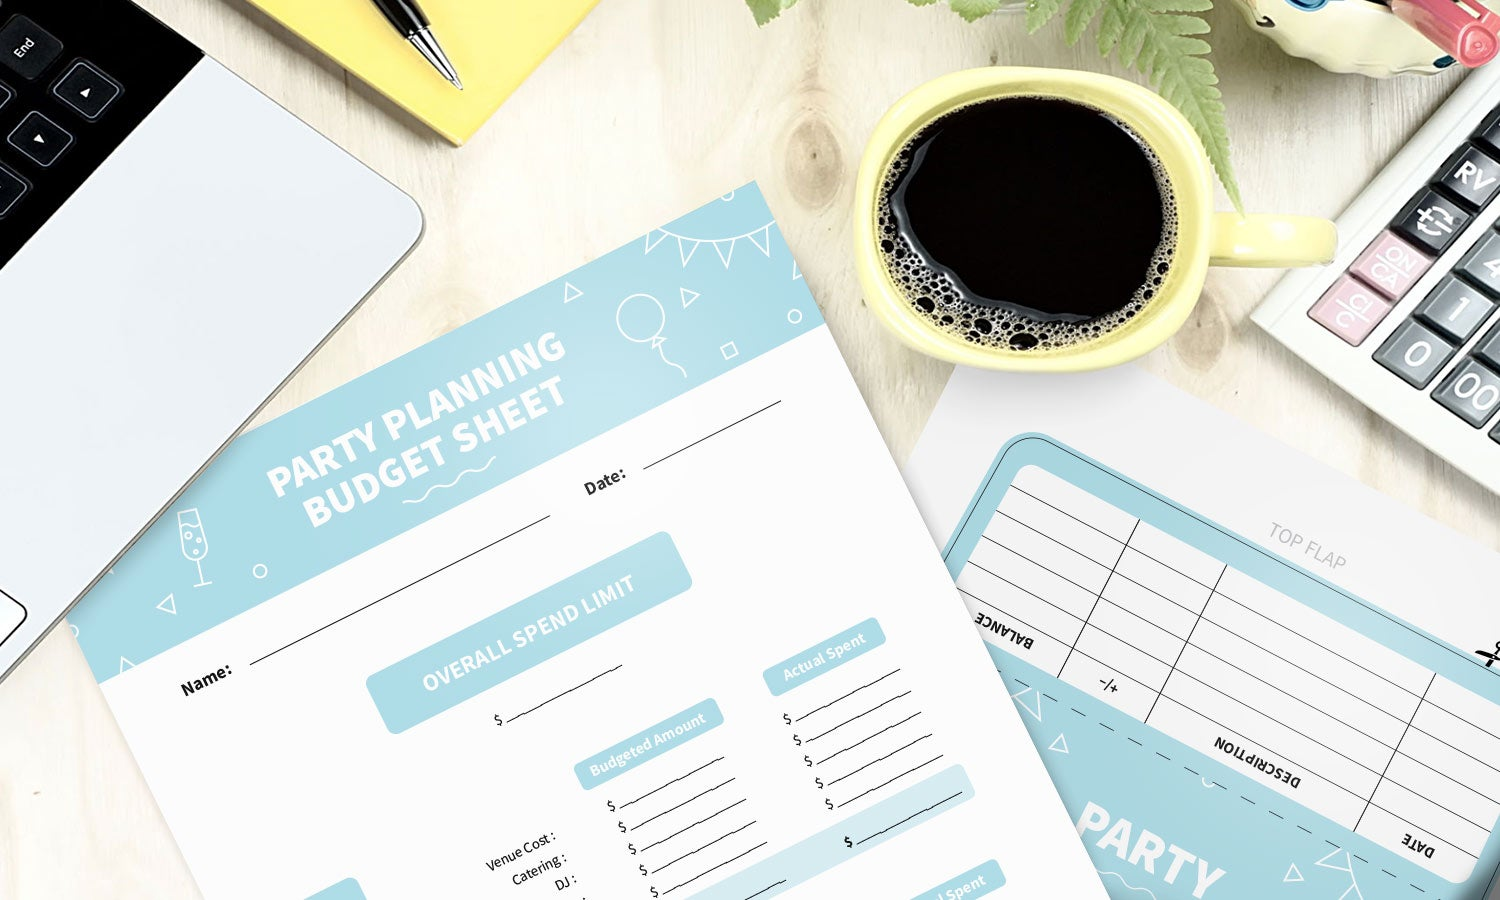 Budget template and cash envelope templates for party budgeting laid out on desk